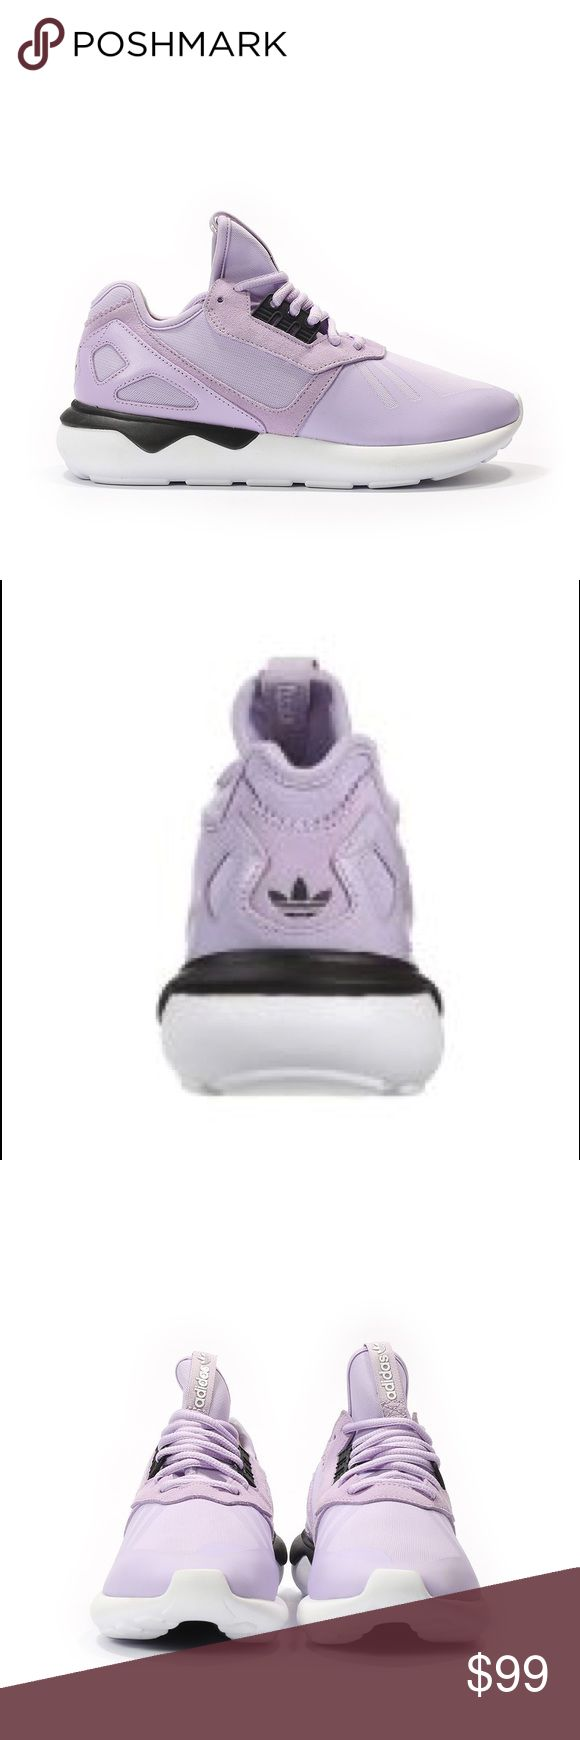 Brand New Adidas Tubular Runner Sneakers Brand new Lilac Adidas tubular runner Sneakers, comes with the box! Size 7.5! Very comfy and cute pair of running sneakers !!  adidas Shoes Sneakers